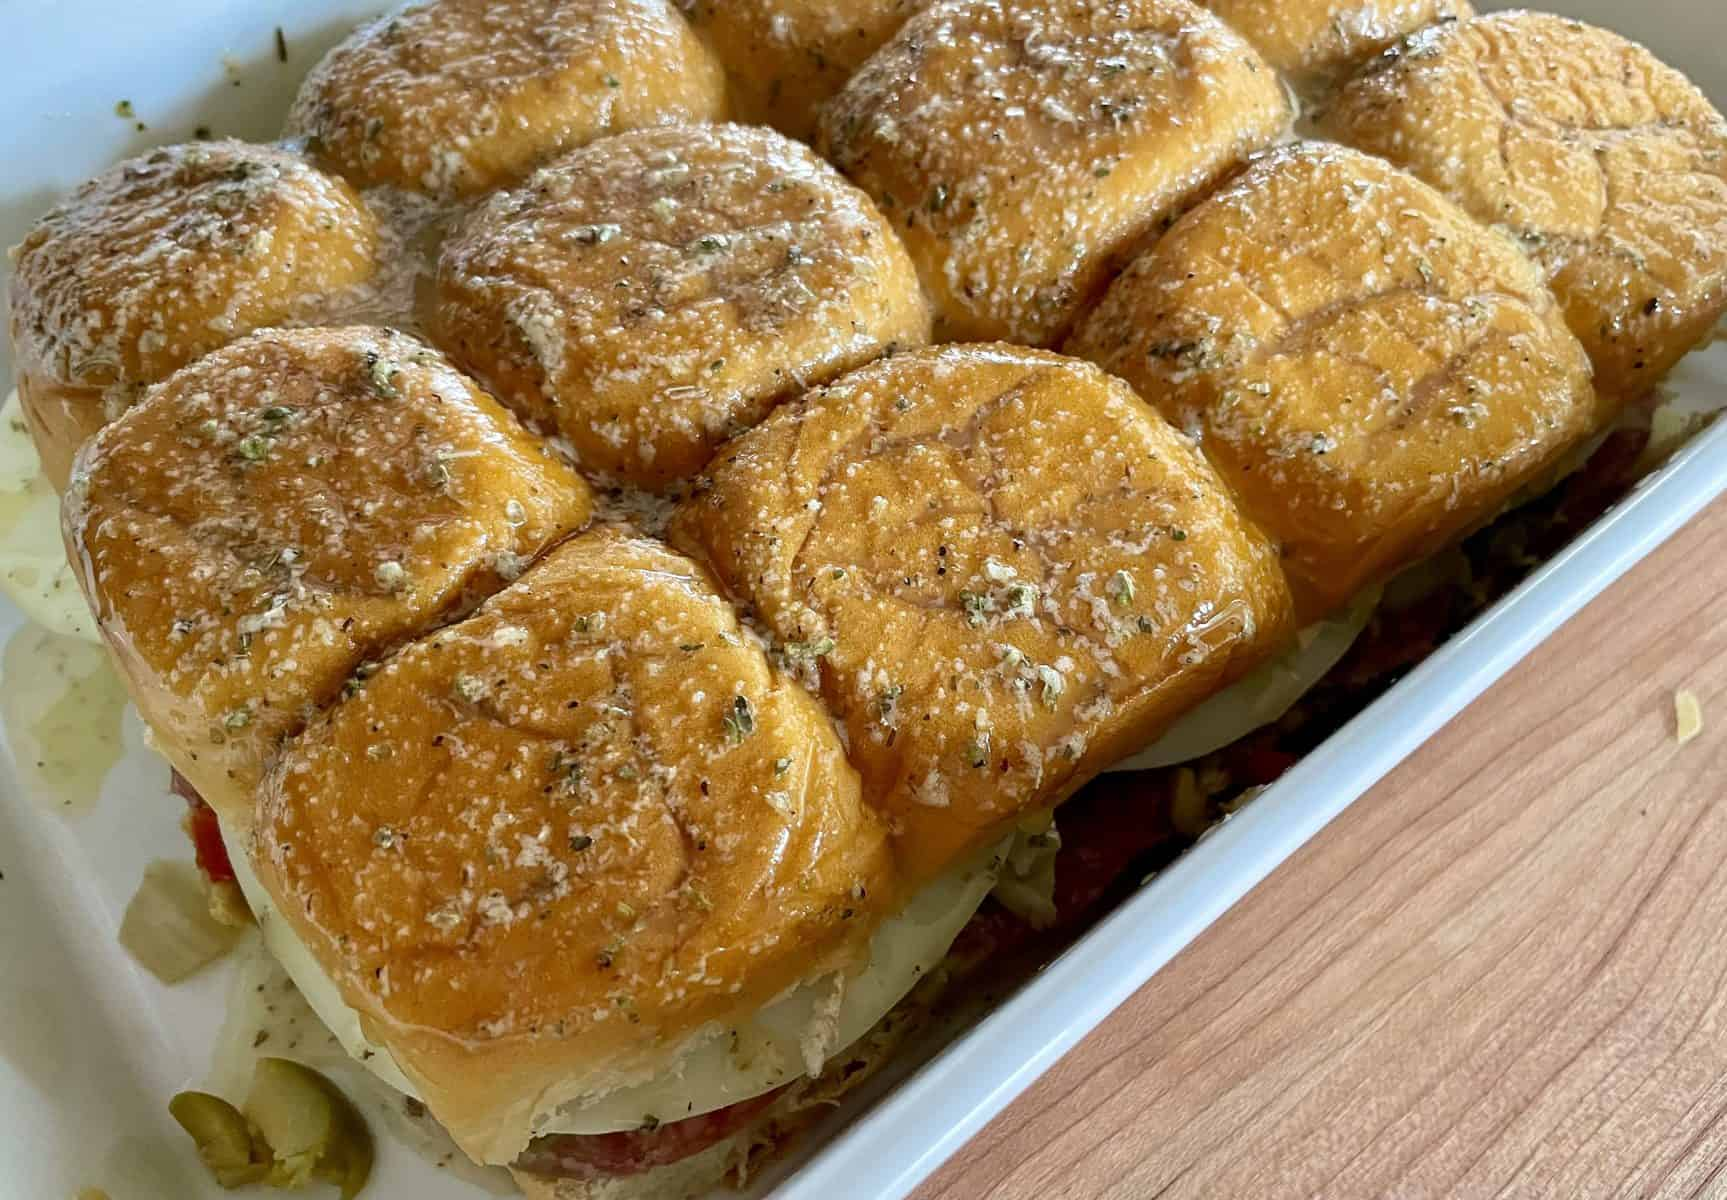 slide view of sandwiches brushed with a seasoned butter topping.